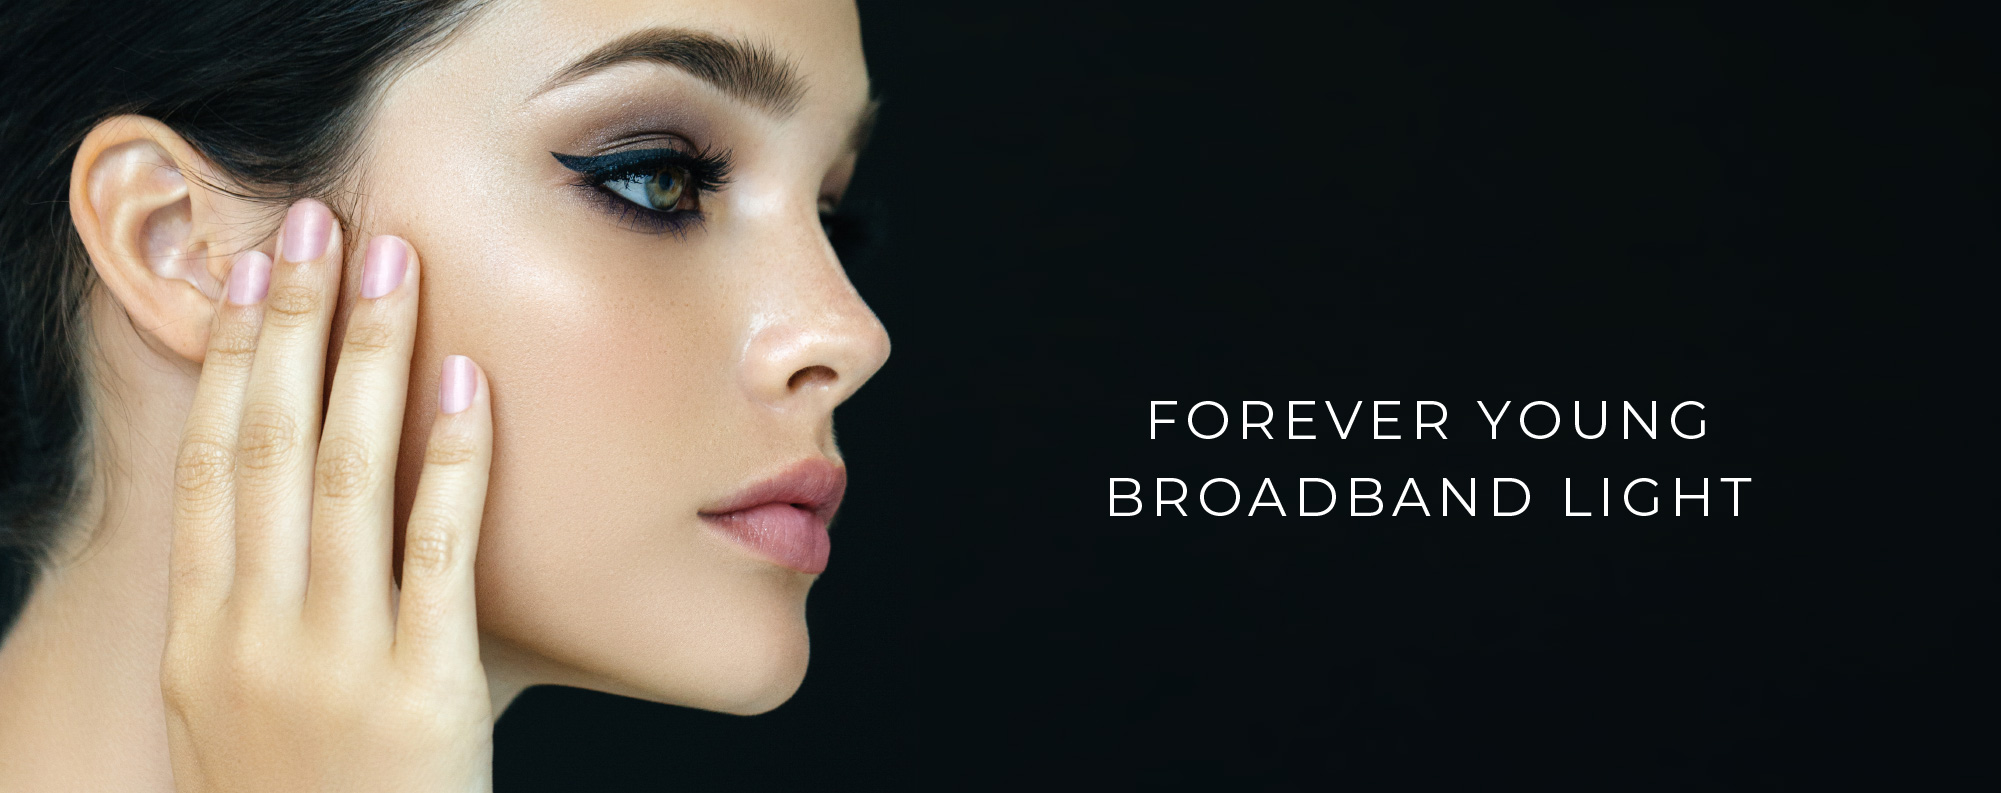 Forever Young Broadband Light Anti Ageing Epion Clinic